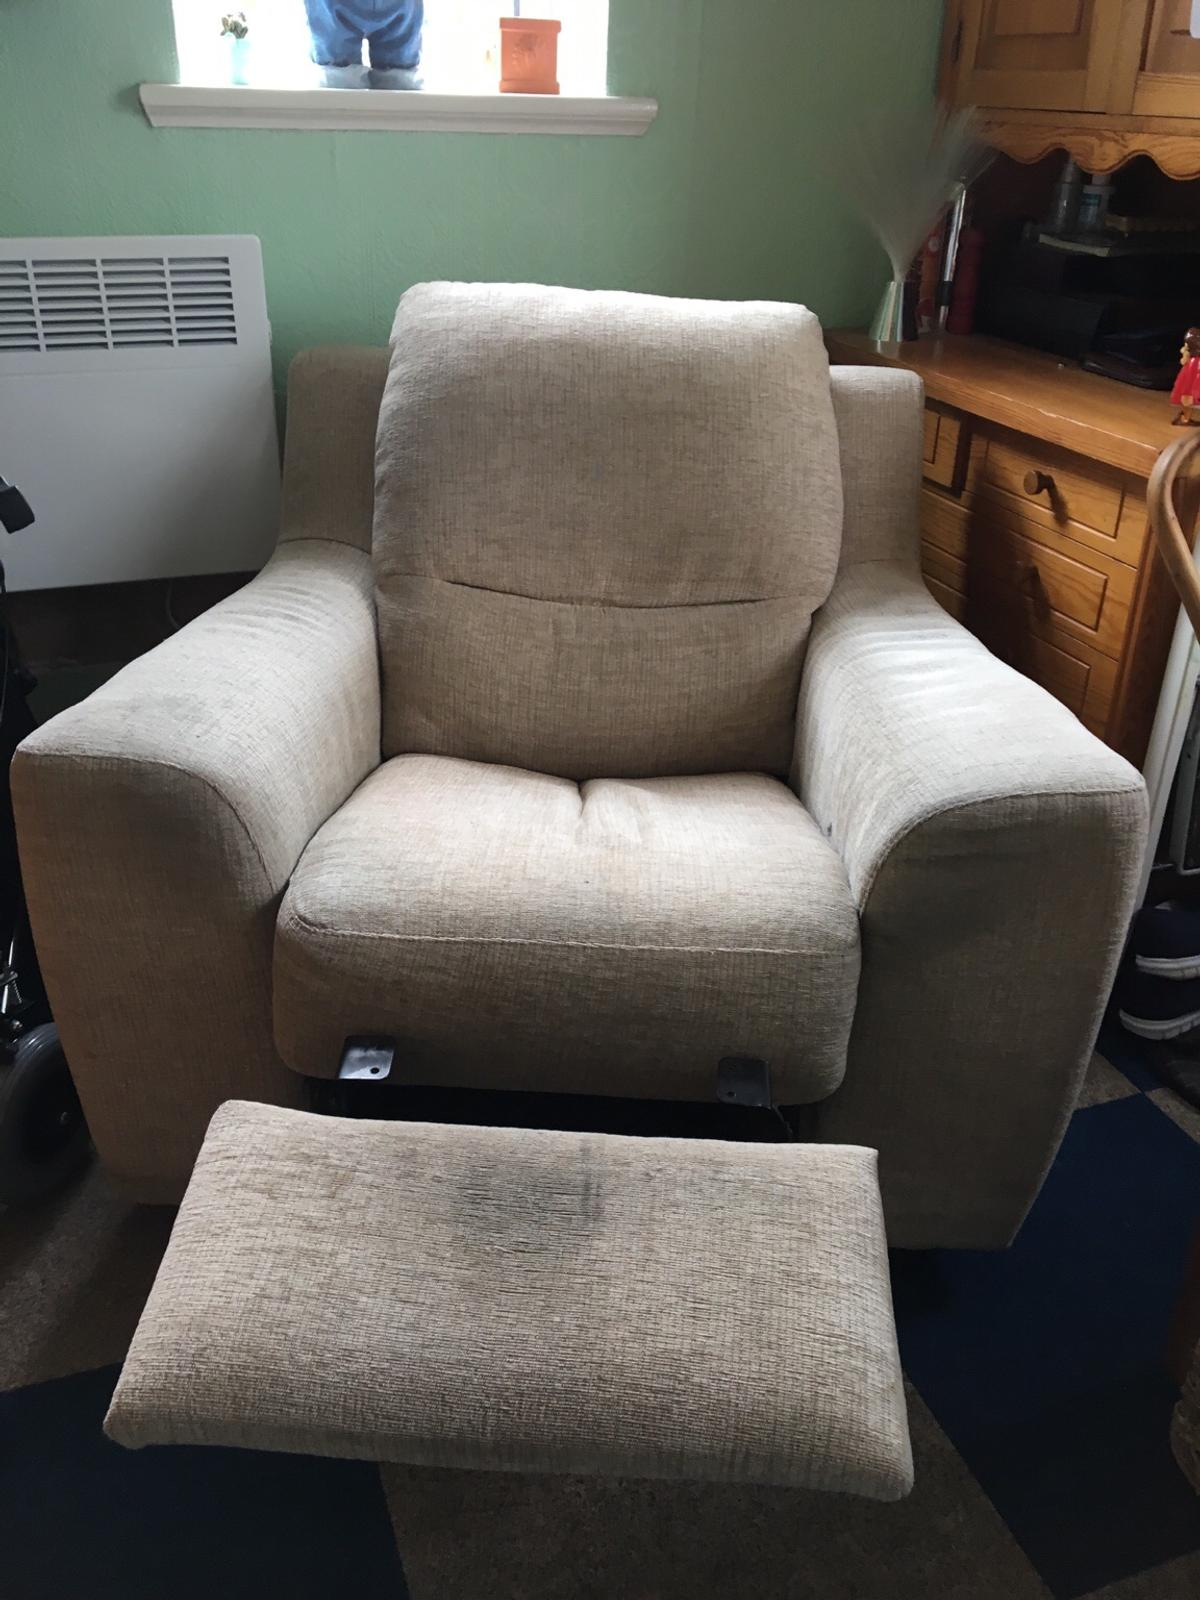 Picture of: Fabric Recliner Chair In B63 Halesowen For 10 00 For Sale Shpock